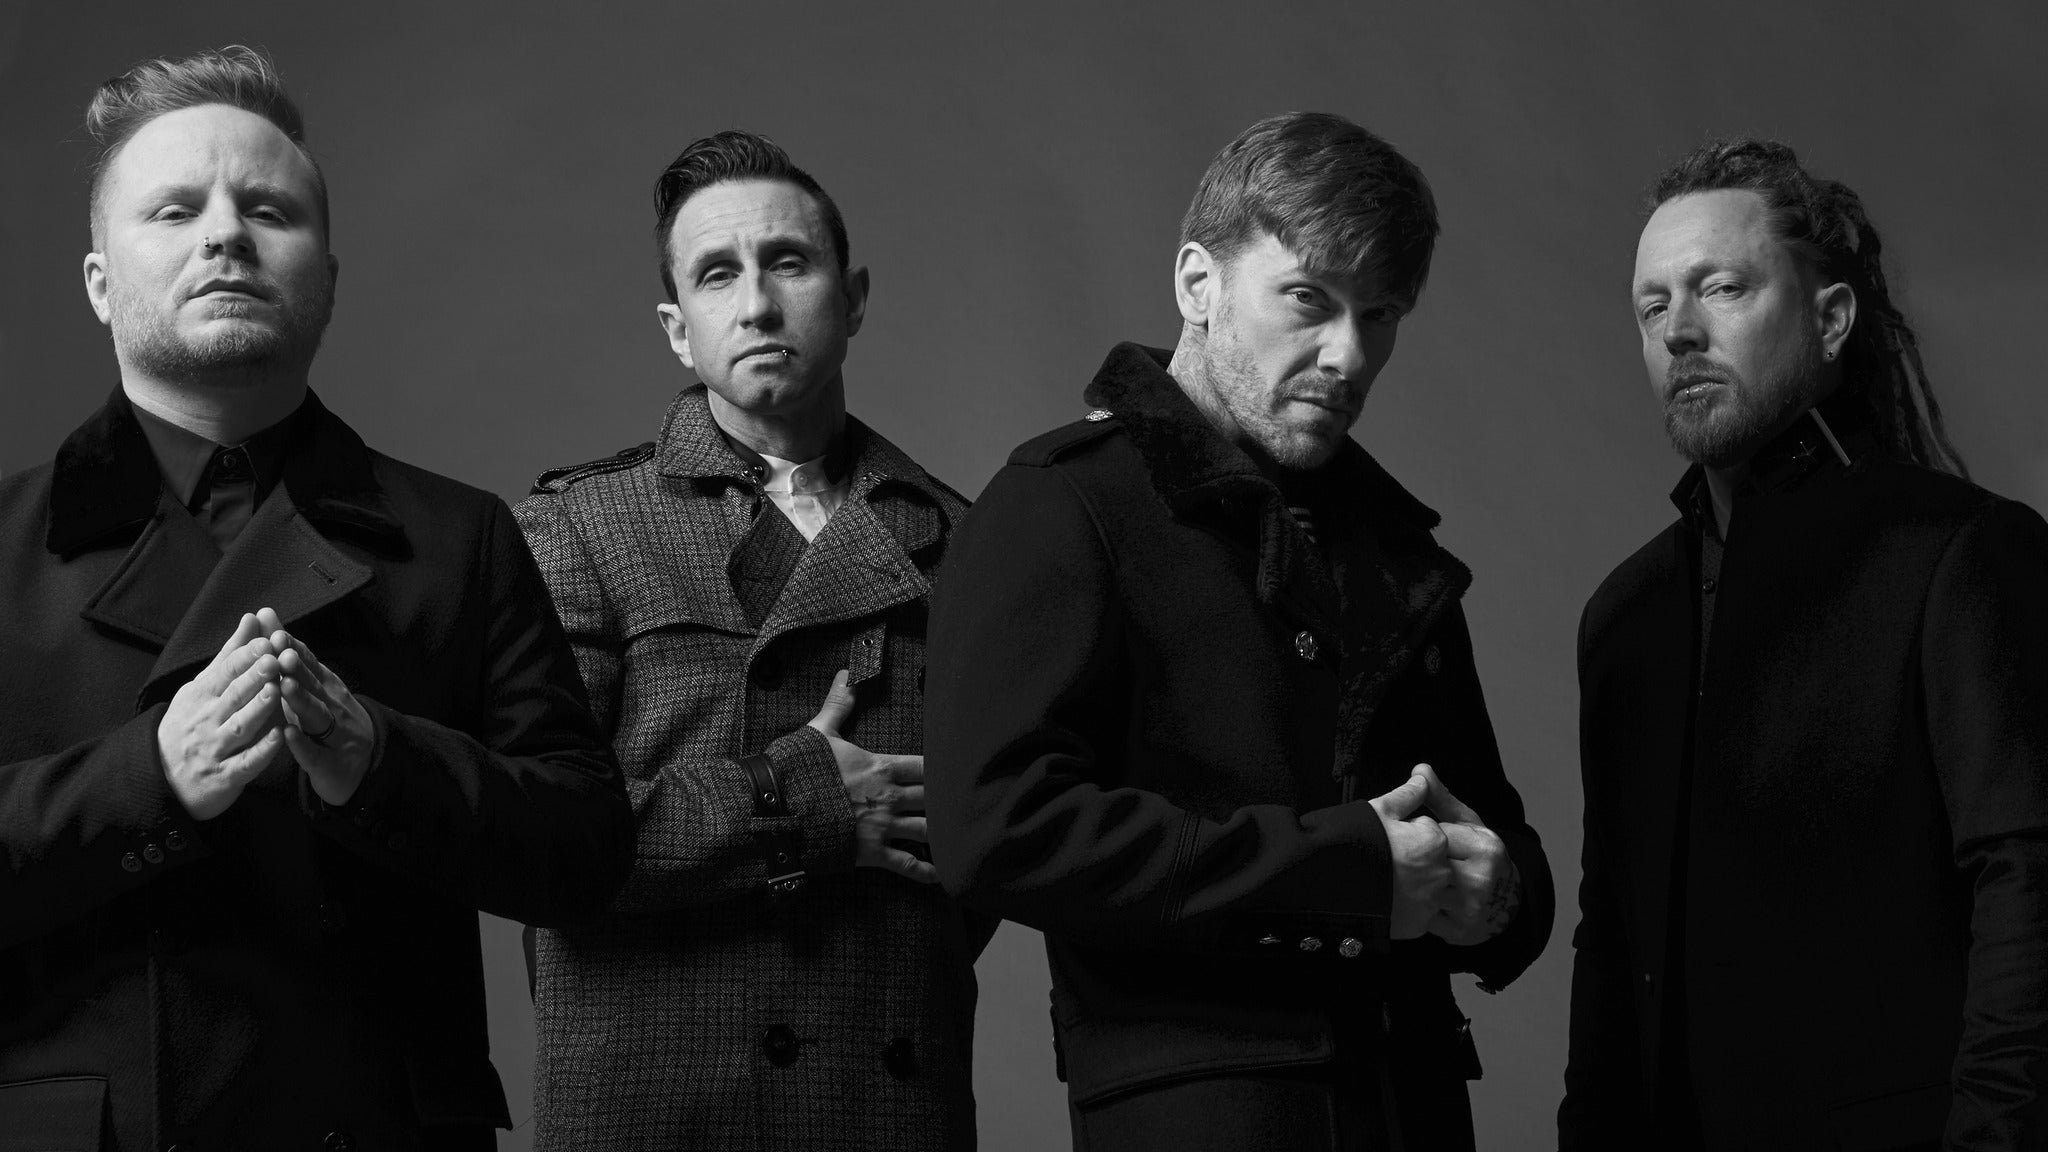 95.5 KLOS Whiplash Presents Shinedown at The Wiltern